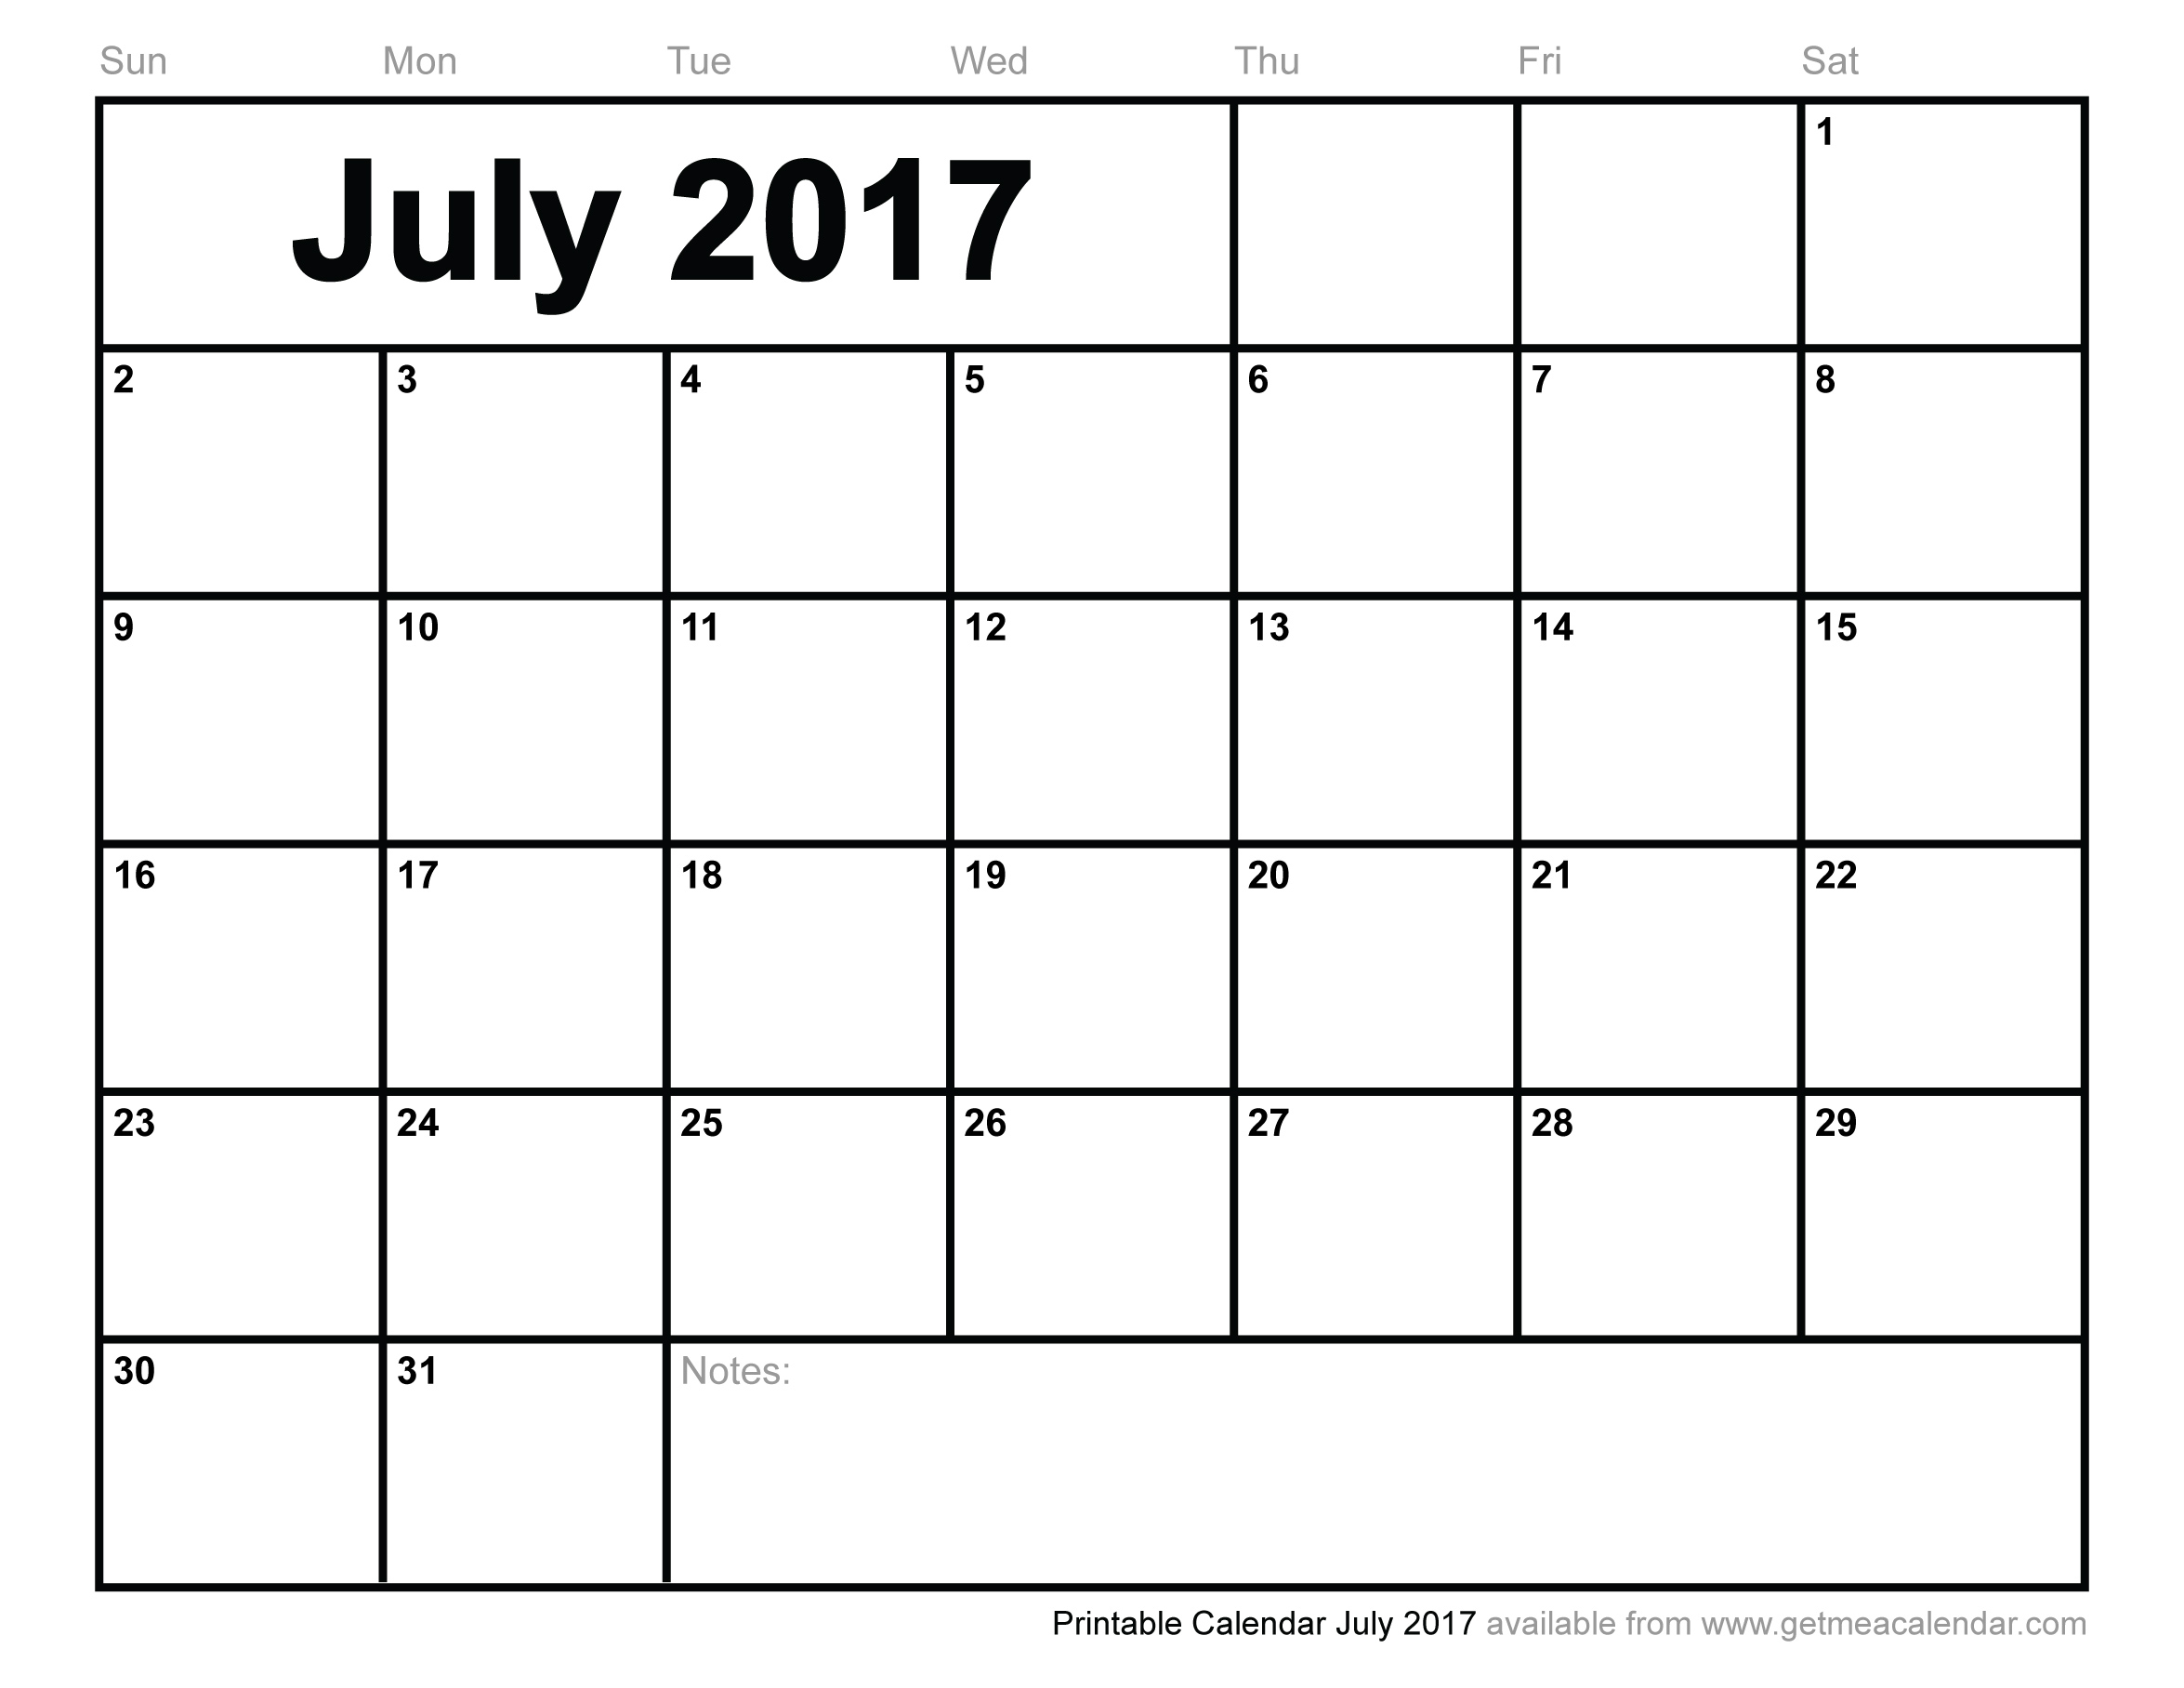 July 2017 Calendar Printable – Templates Free Printable for Cute Blank Calendar Page Template